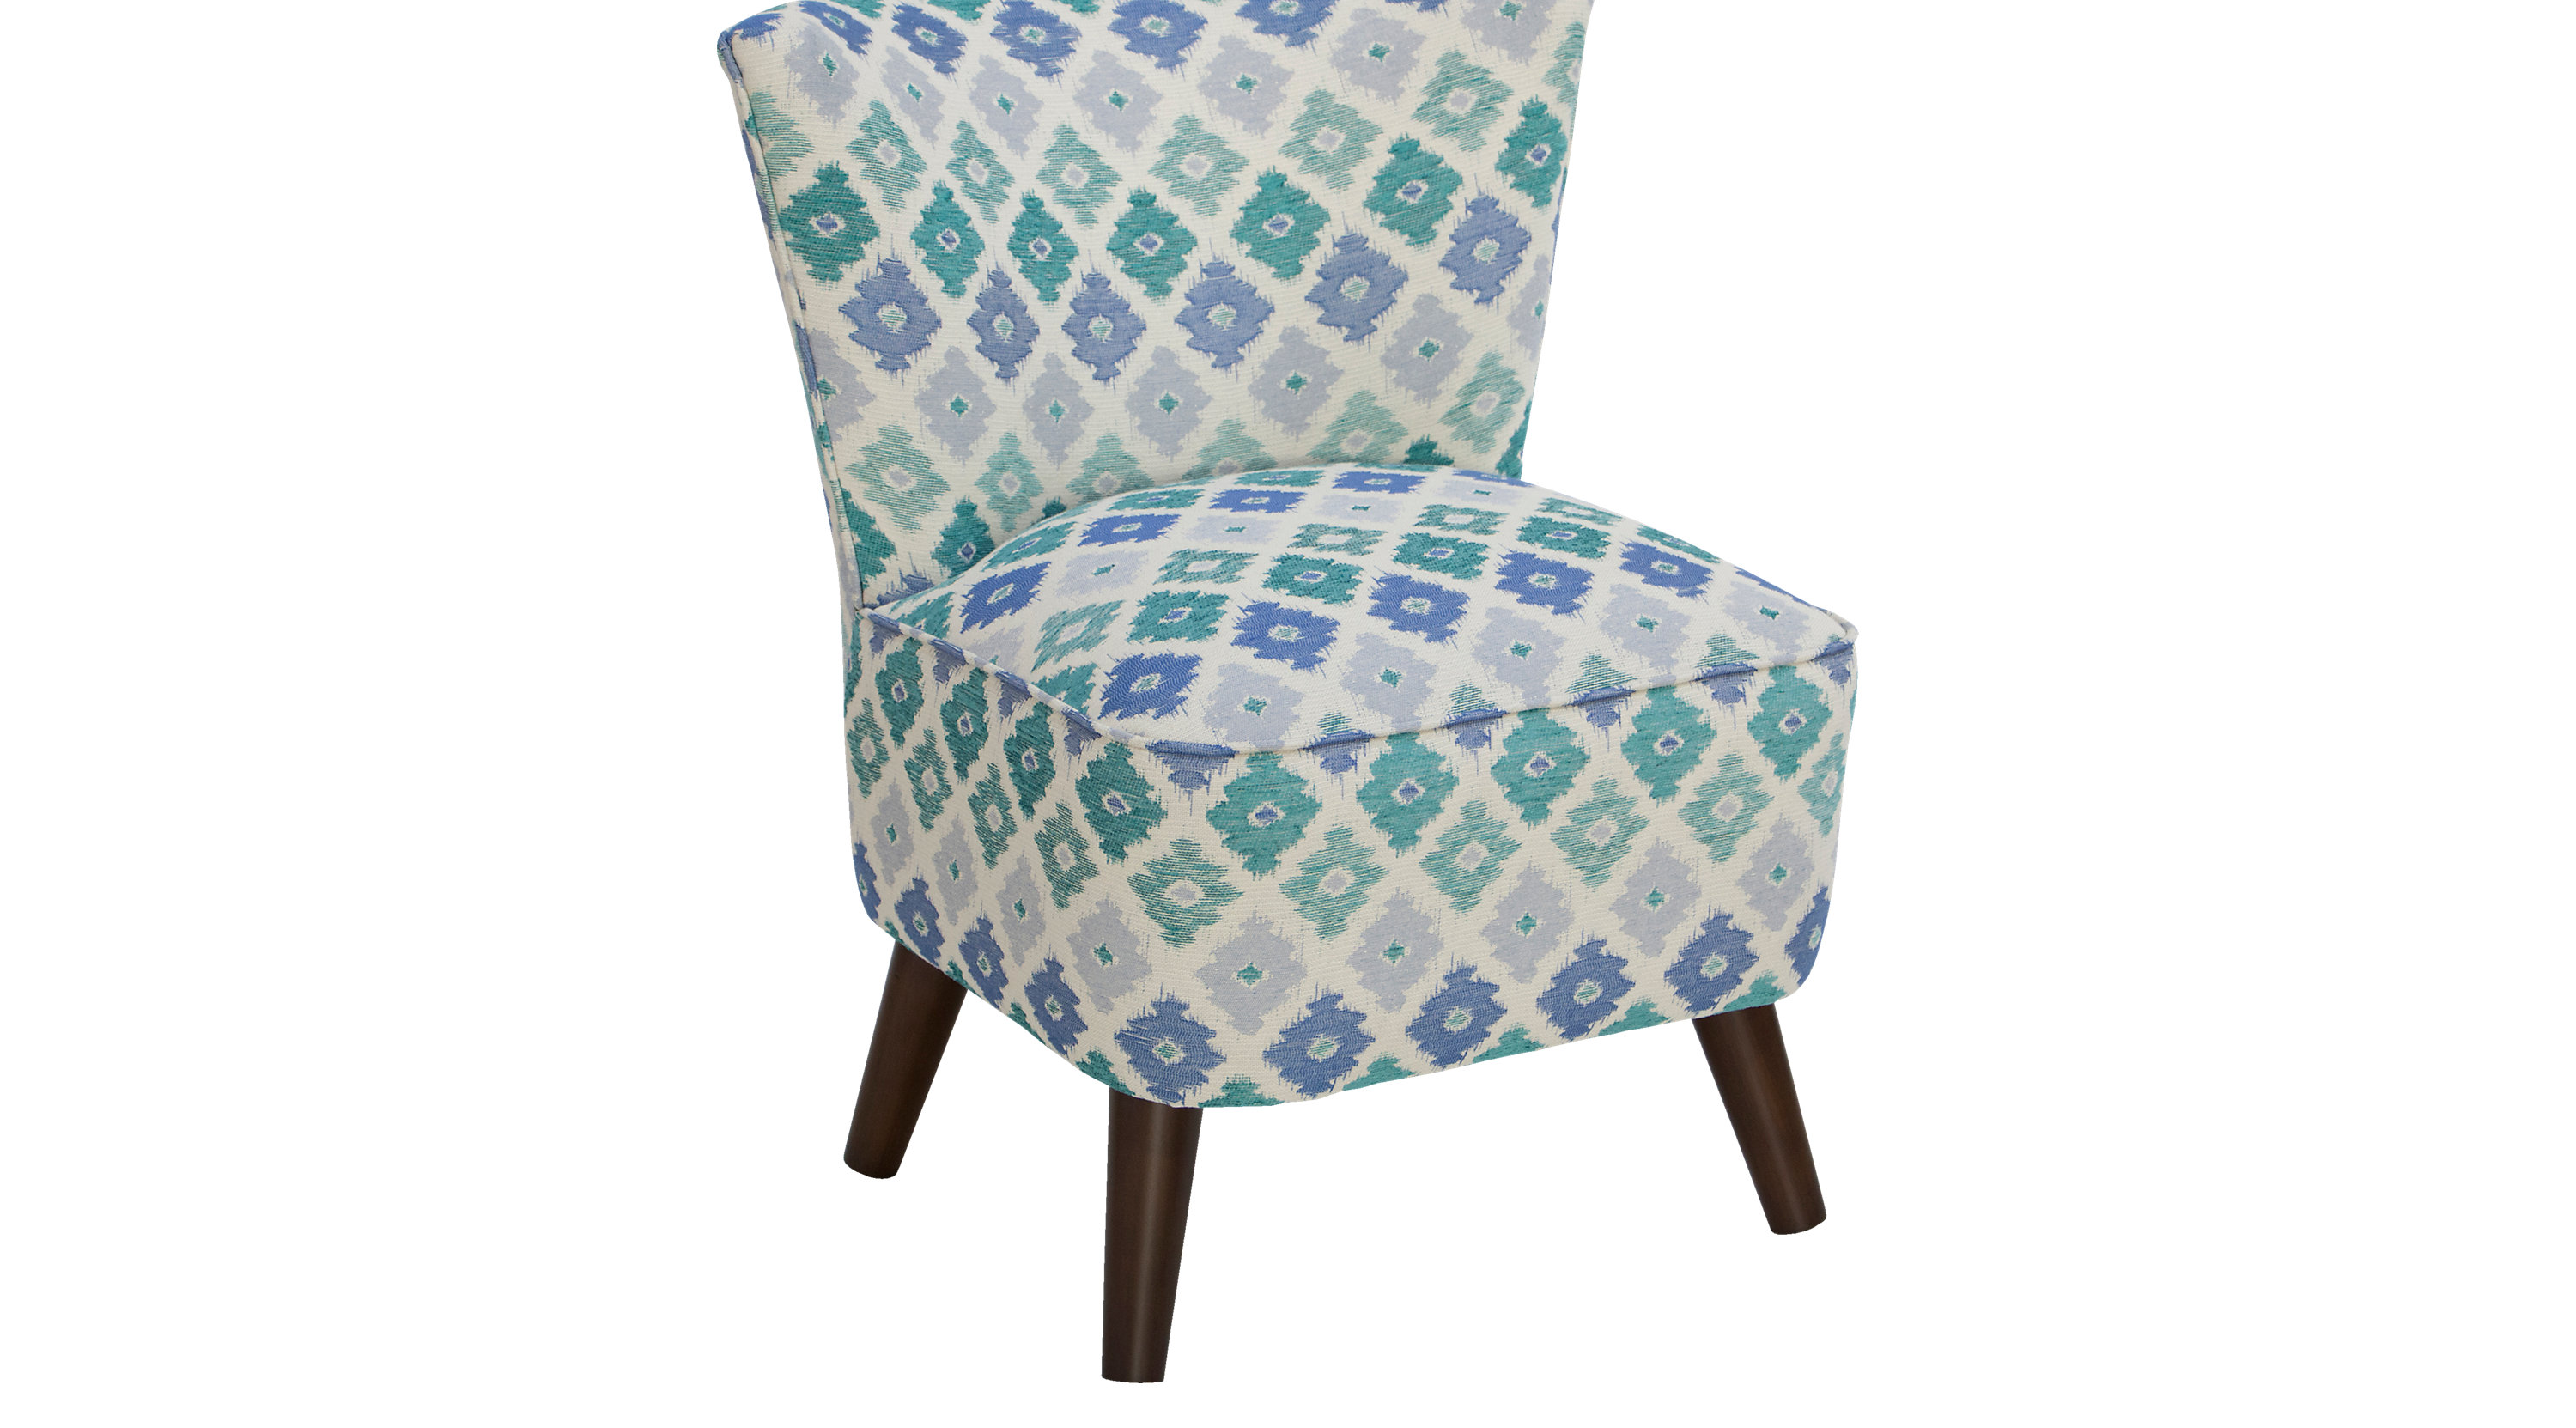 Blue Patterned Chair Aviana Marine Chair